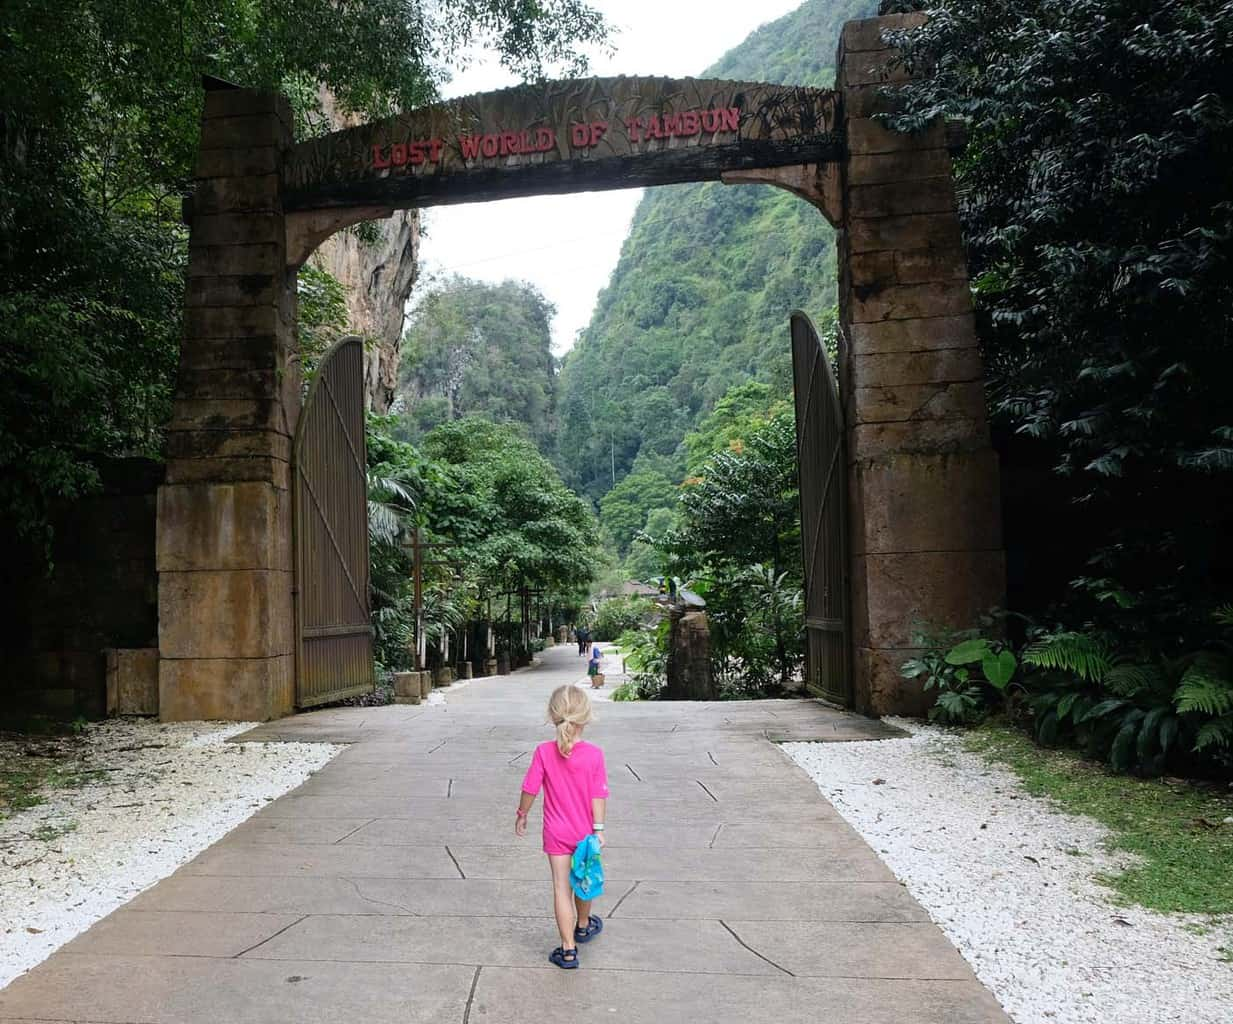 Glamping Lost World of Tambun